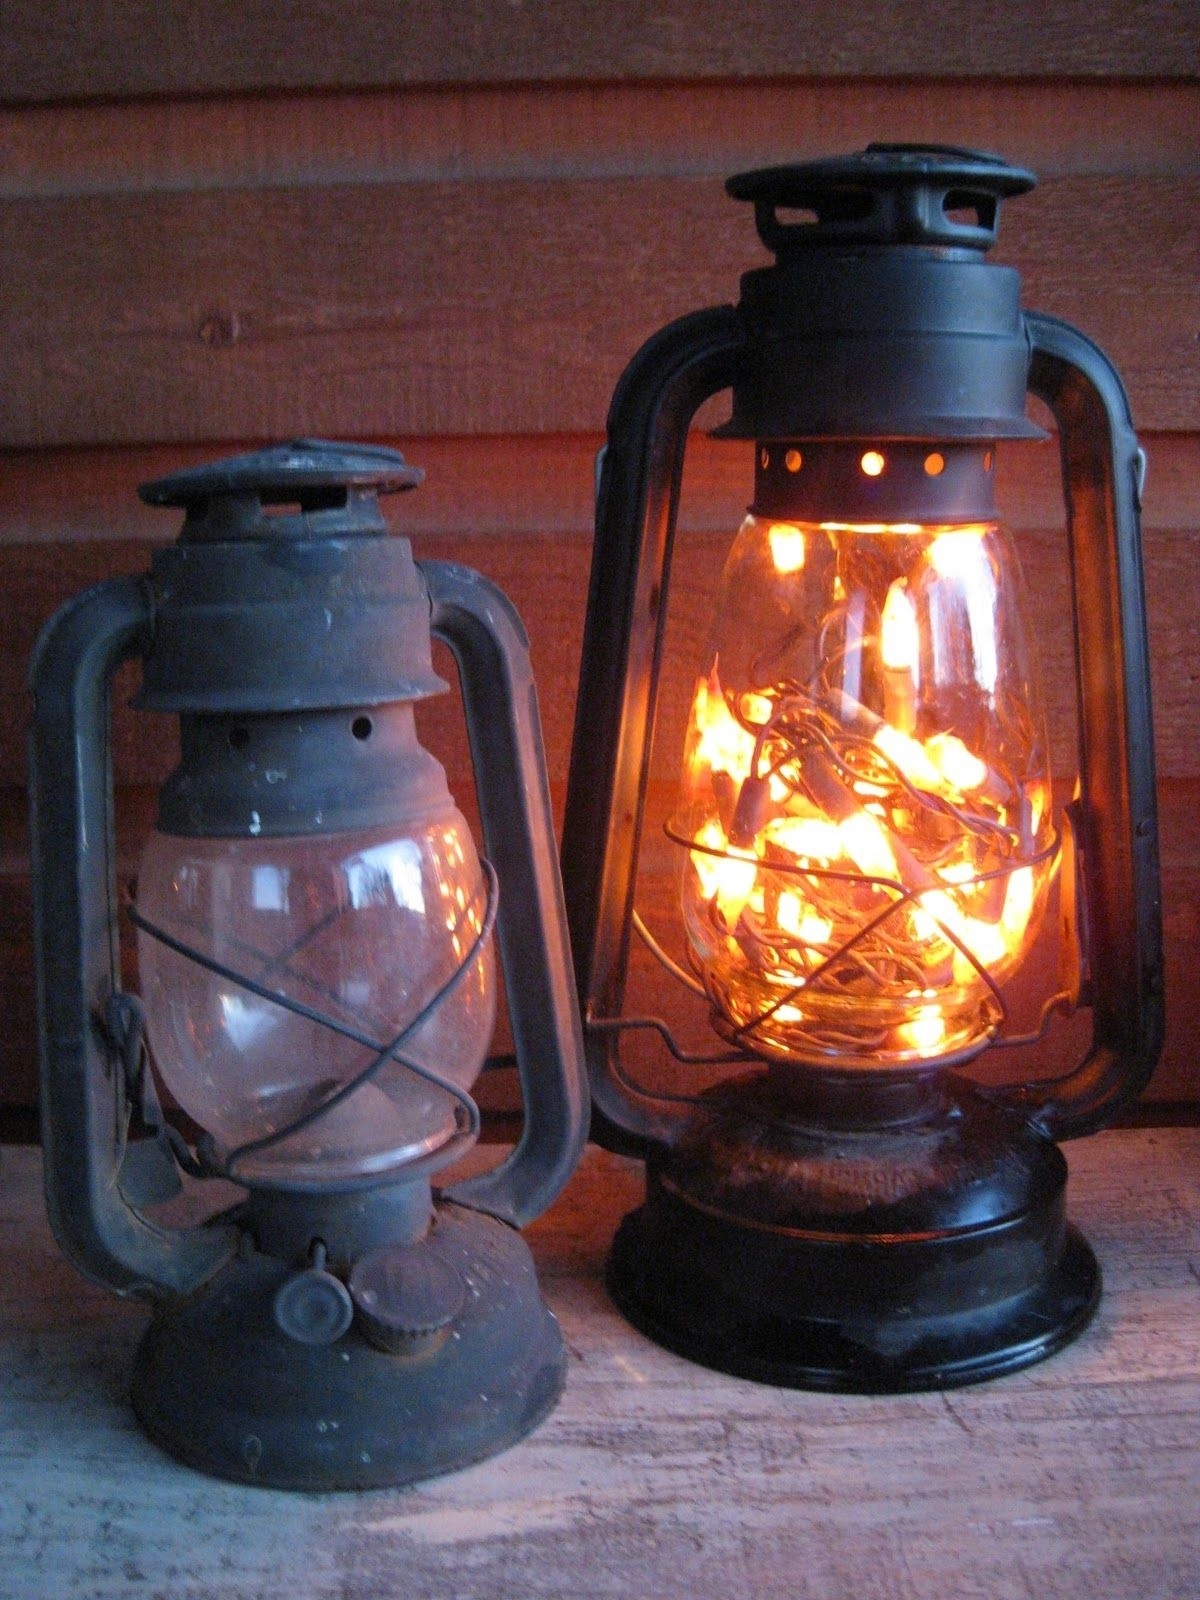 Decorative Outdoor Kerosene Lanterns Intended For Latest Old Lantern. Battery Opereated Lights Inside (View 6 of 20)